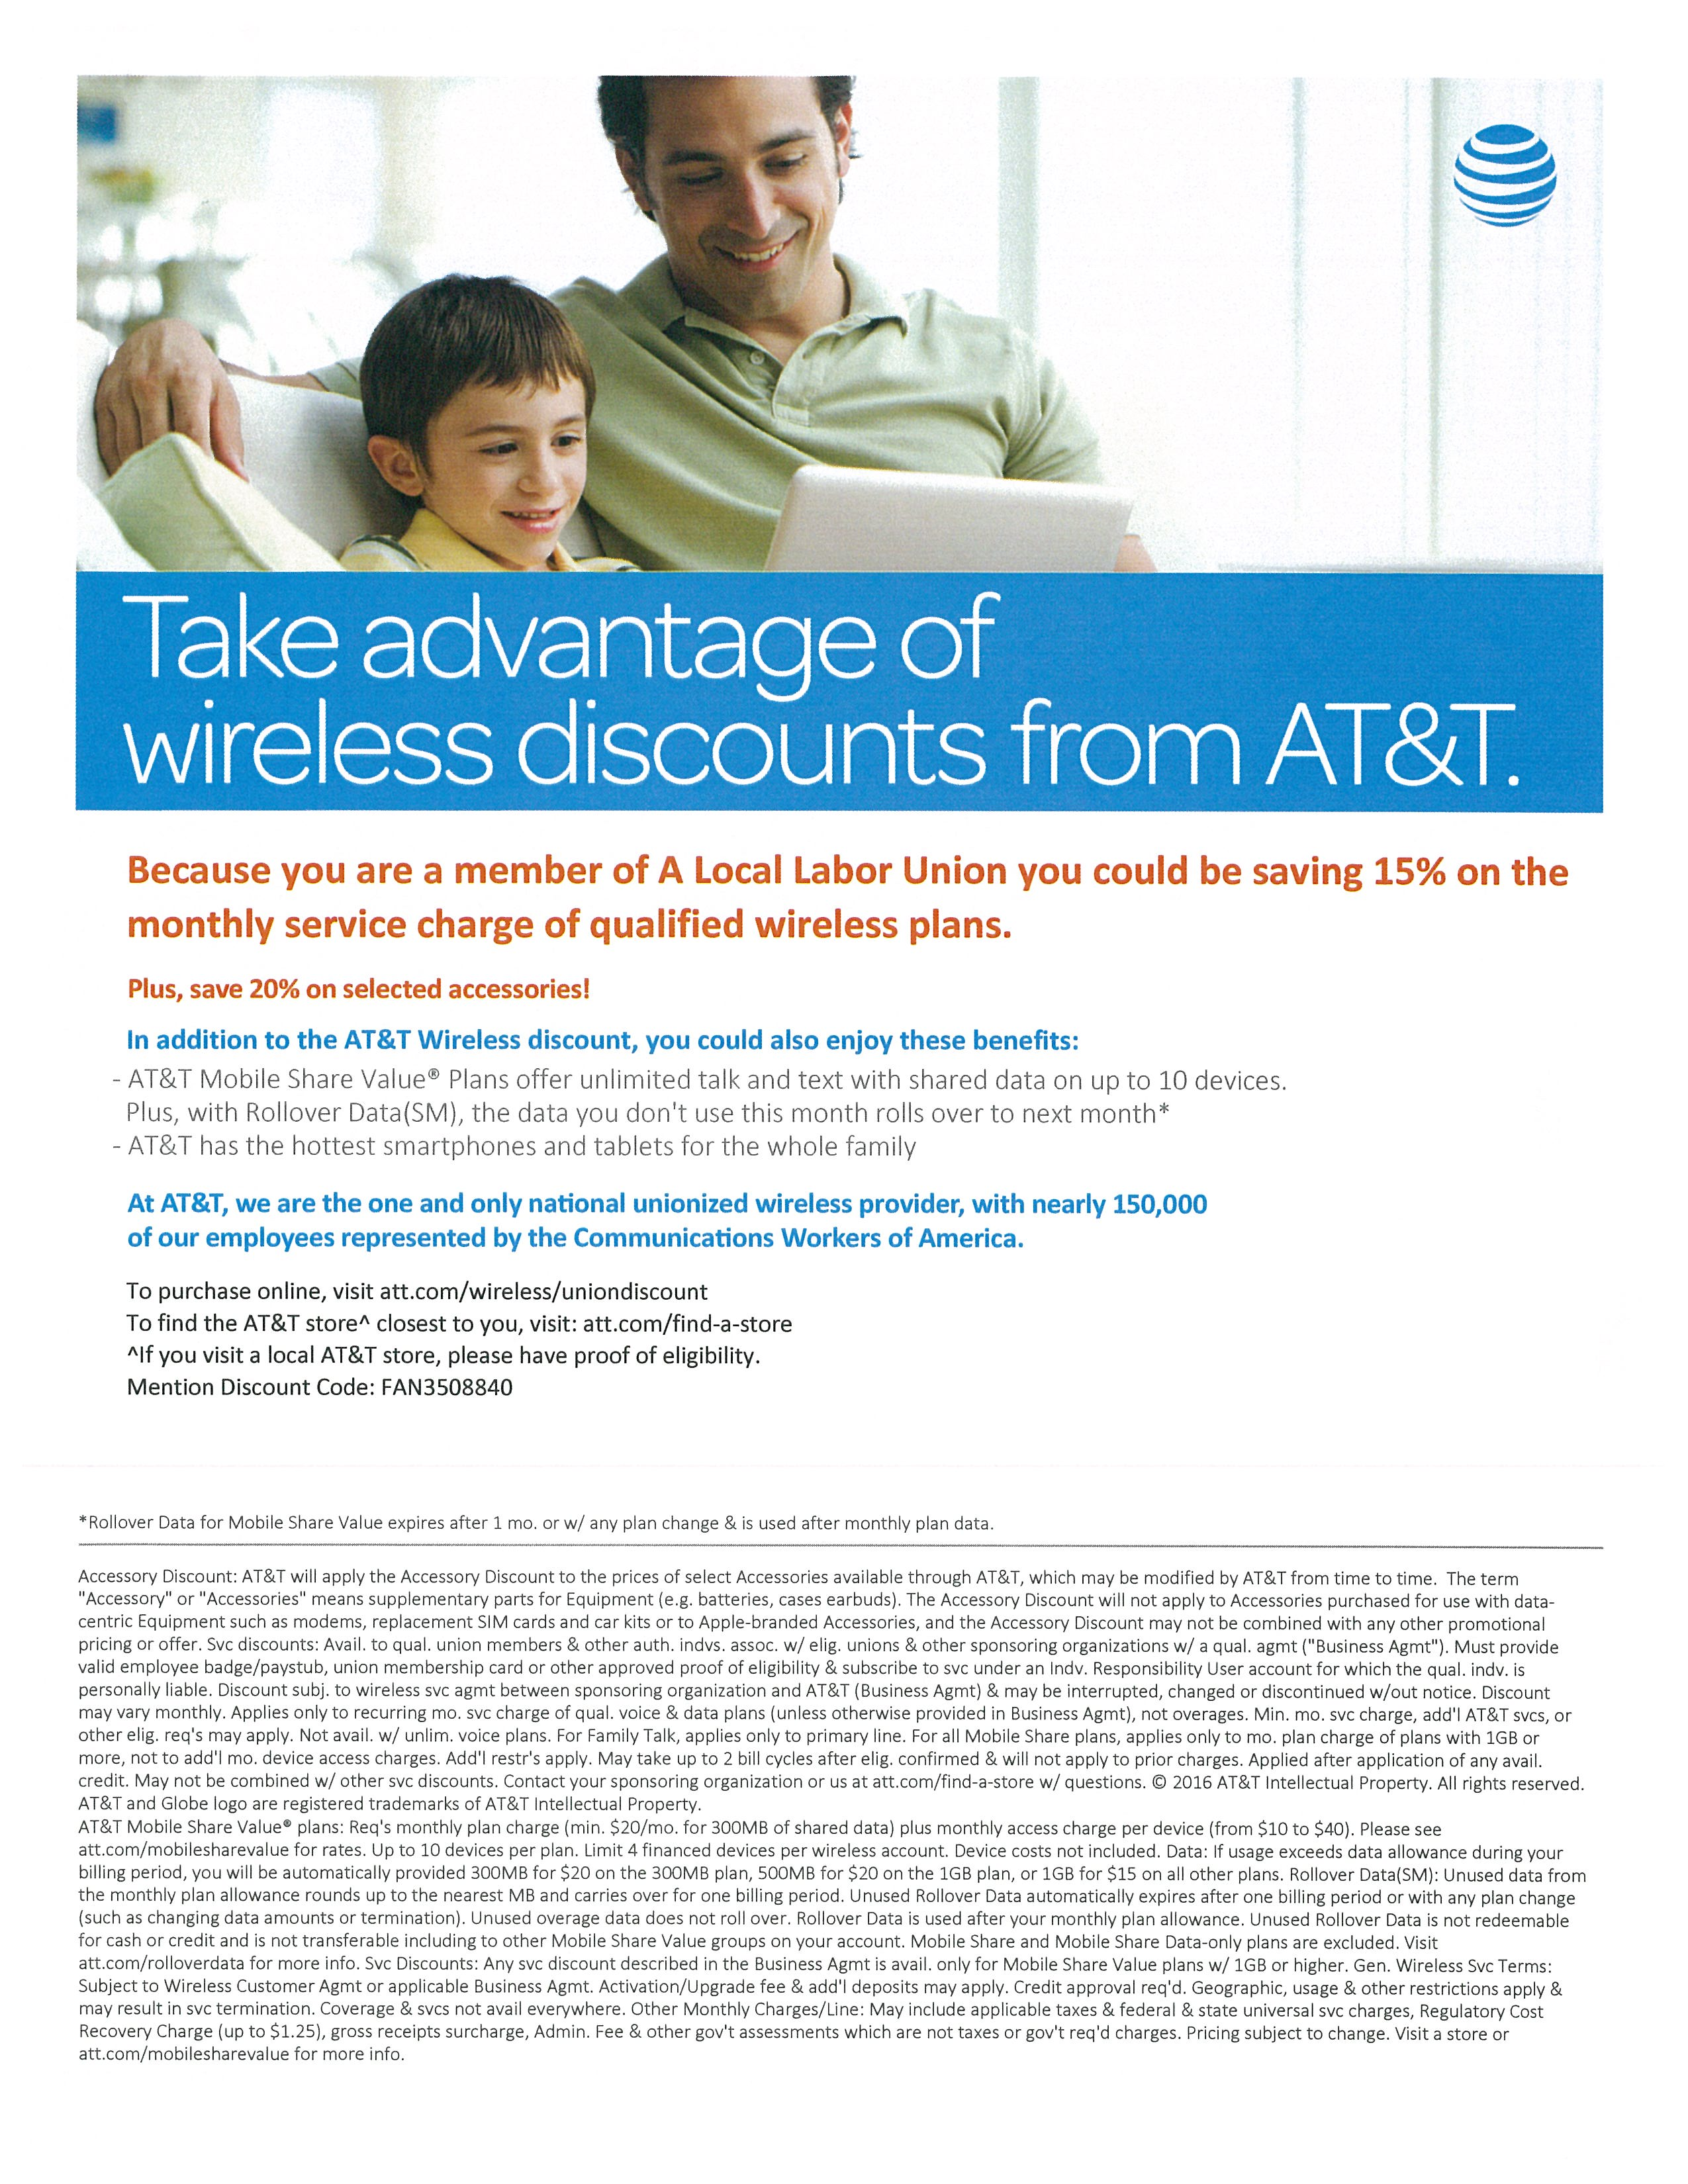 AT&T Union Discount